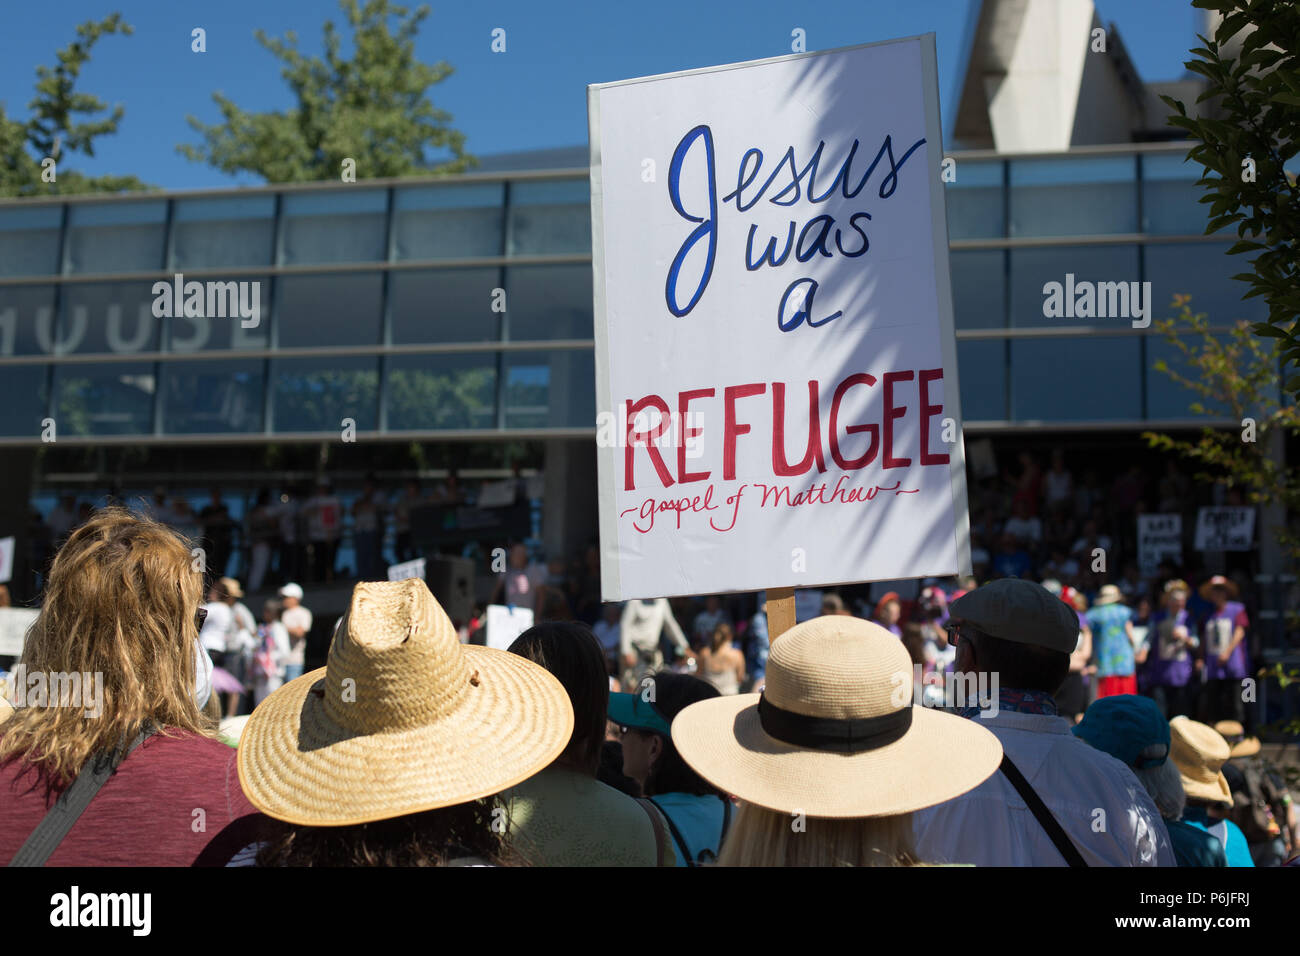 Eugene, Oregon, USA. 30th June, 2018. Citizens rally to protest the separation of immigrant children from their parents when crossing the border into the United States. Copyright: Gina Kelly/Alamy Live News - Stock Image